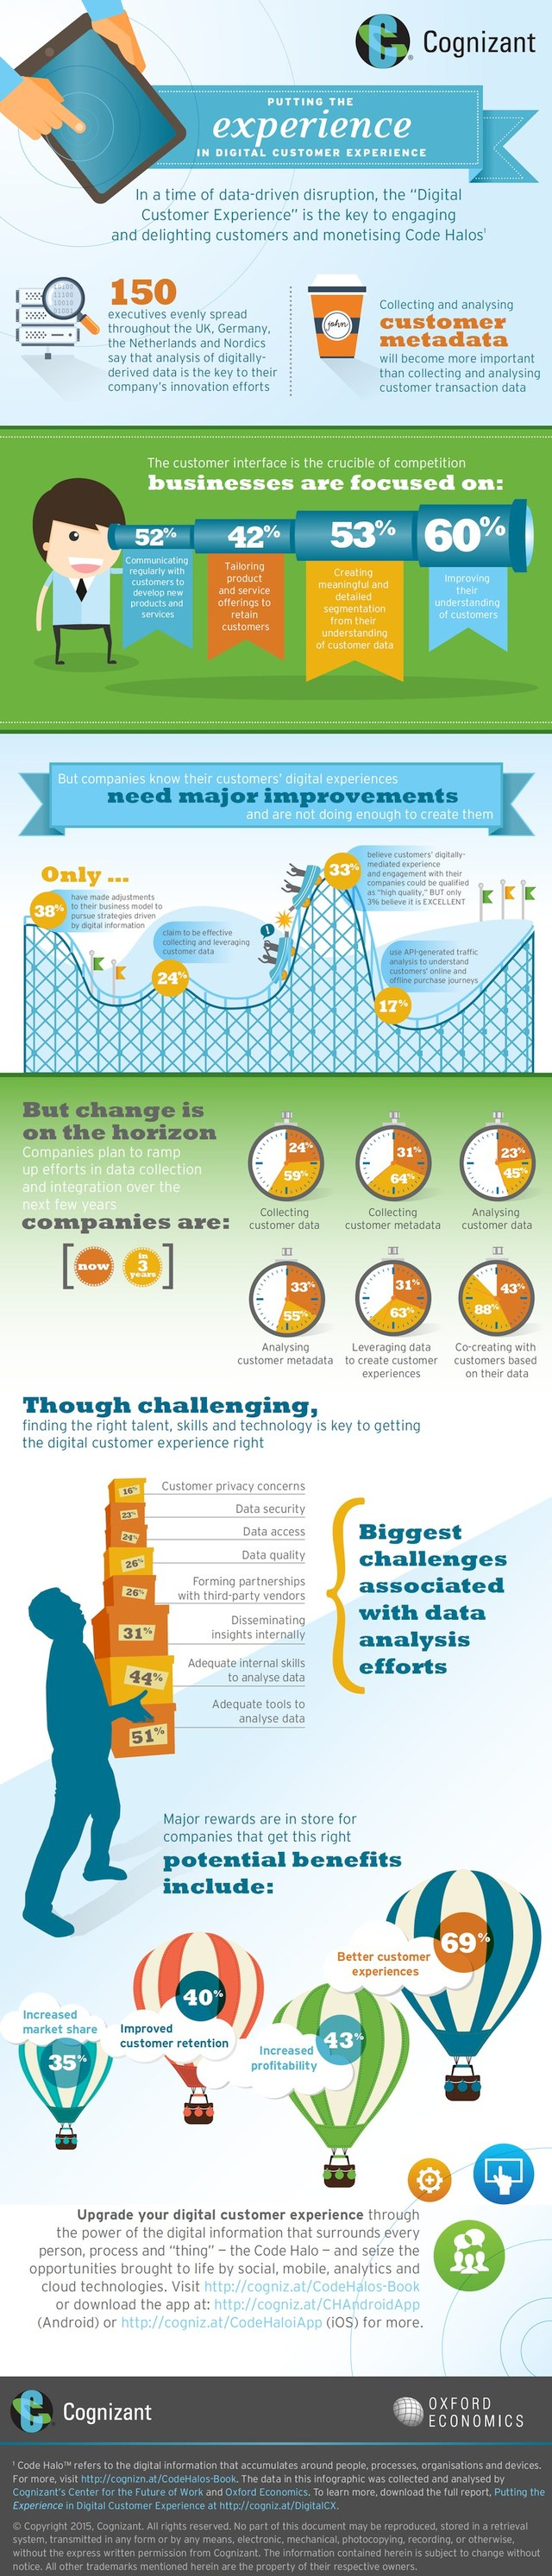 infografik cognizant oxford economics digital customer experience